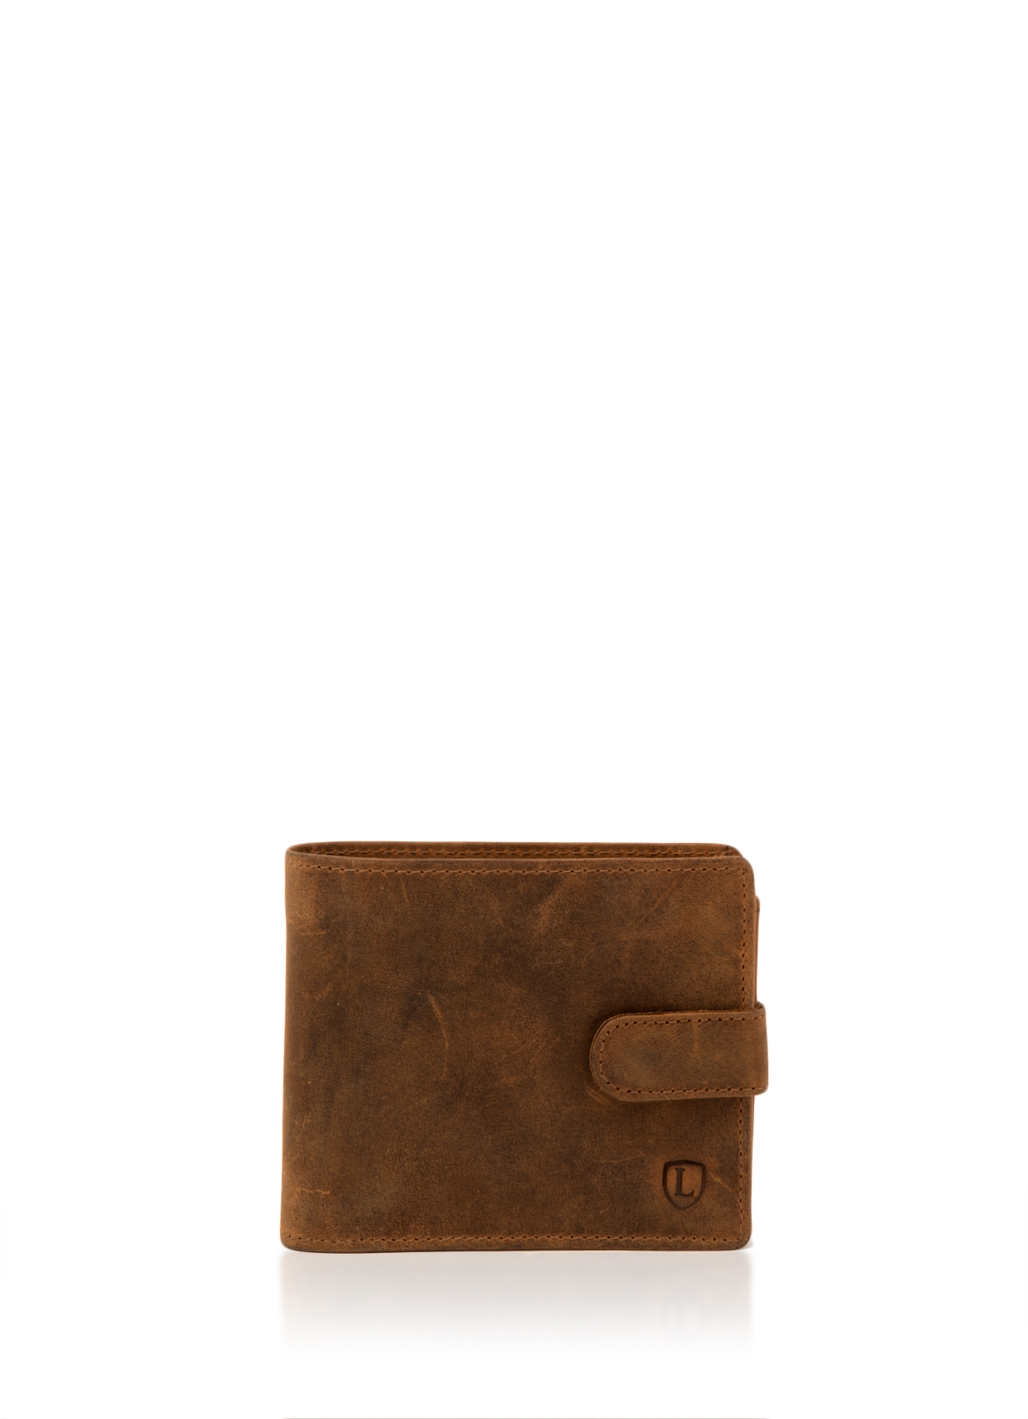 Hunter Leather Wallet in Tan